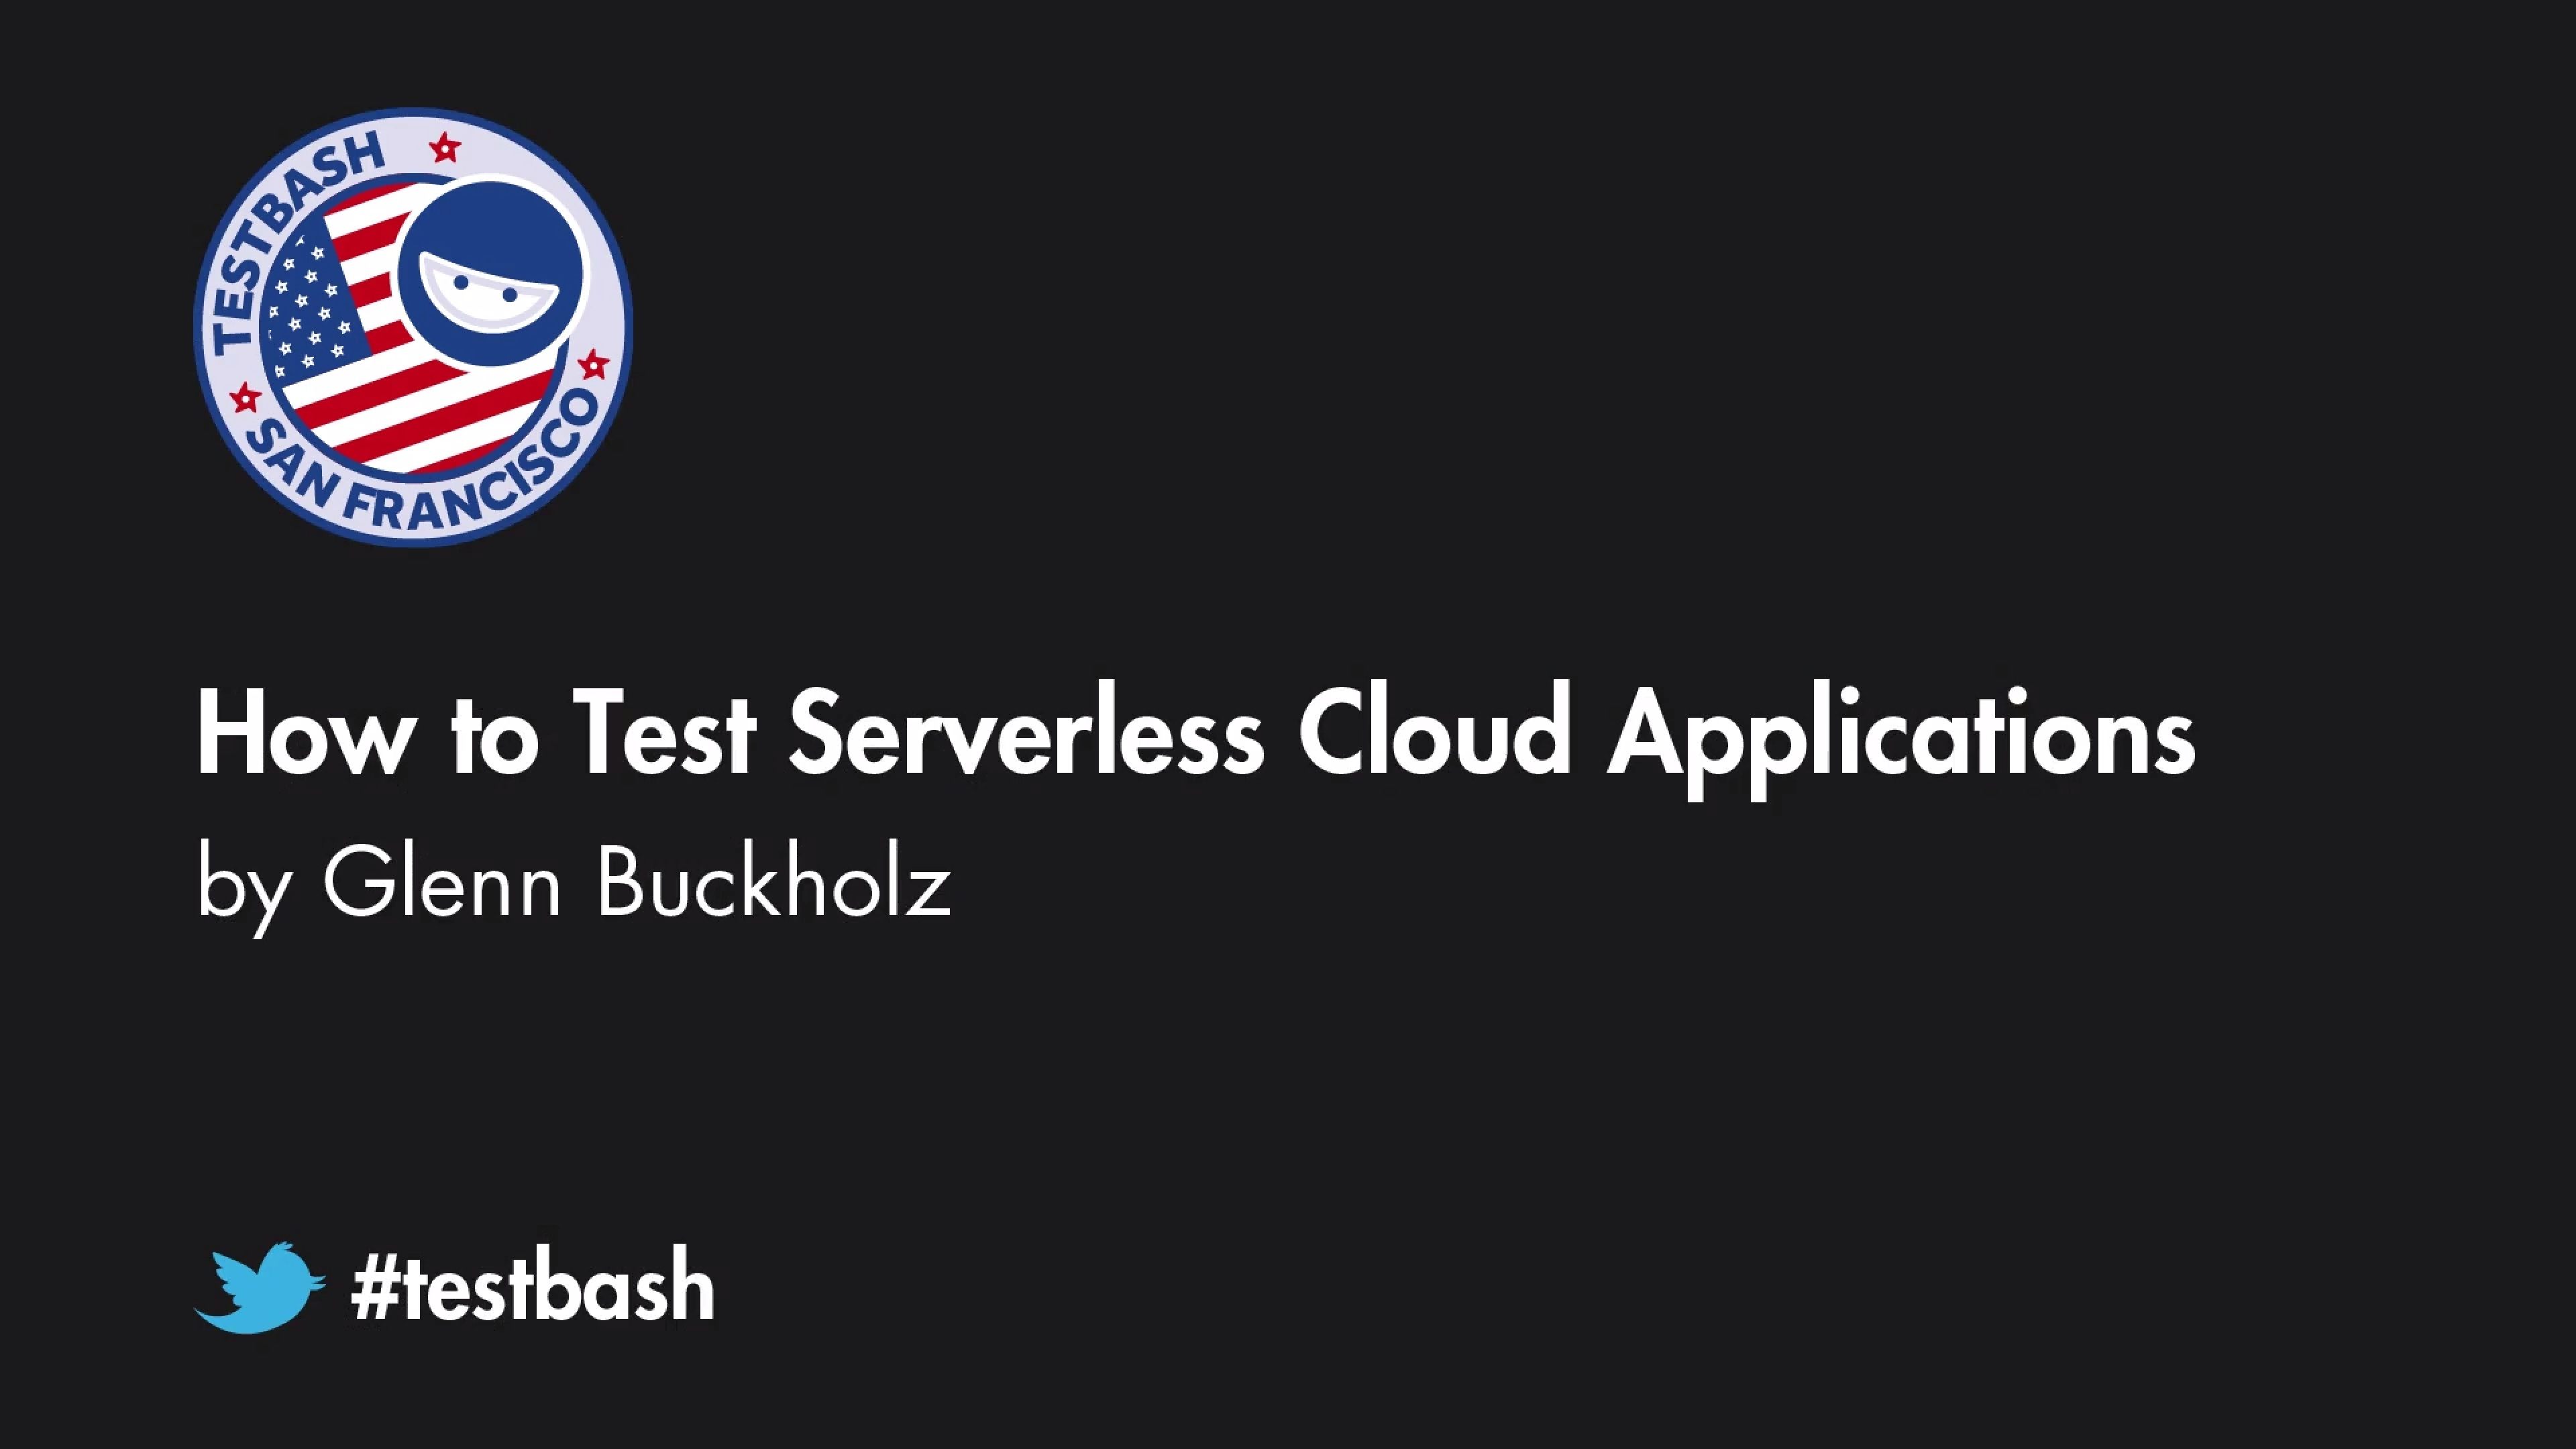 How to Test Serverless Cloud Applications - Glenn Buckholz